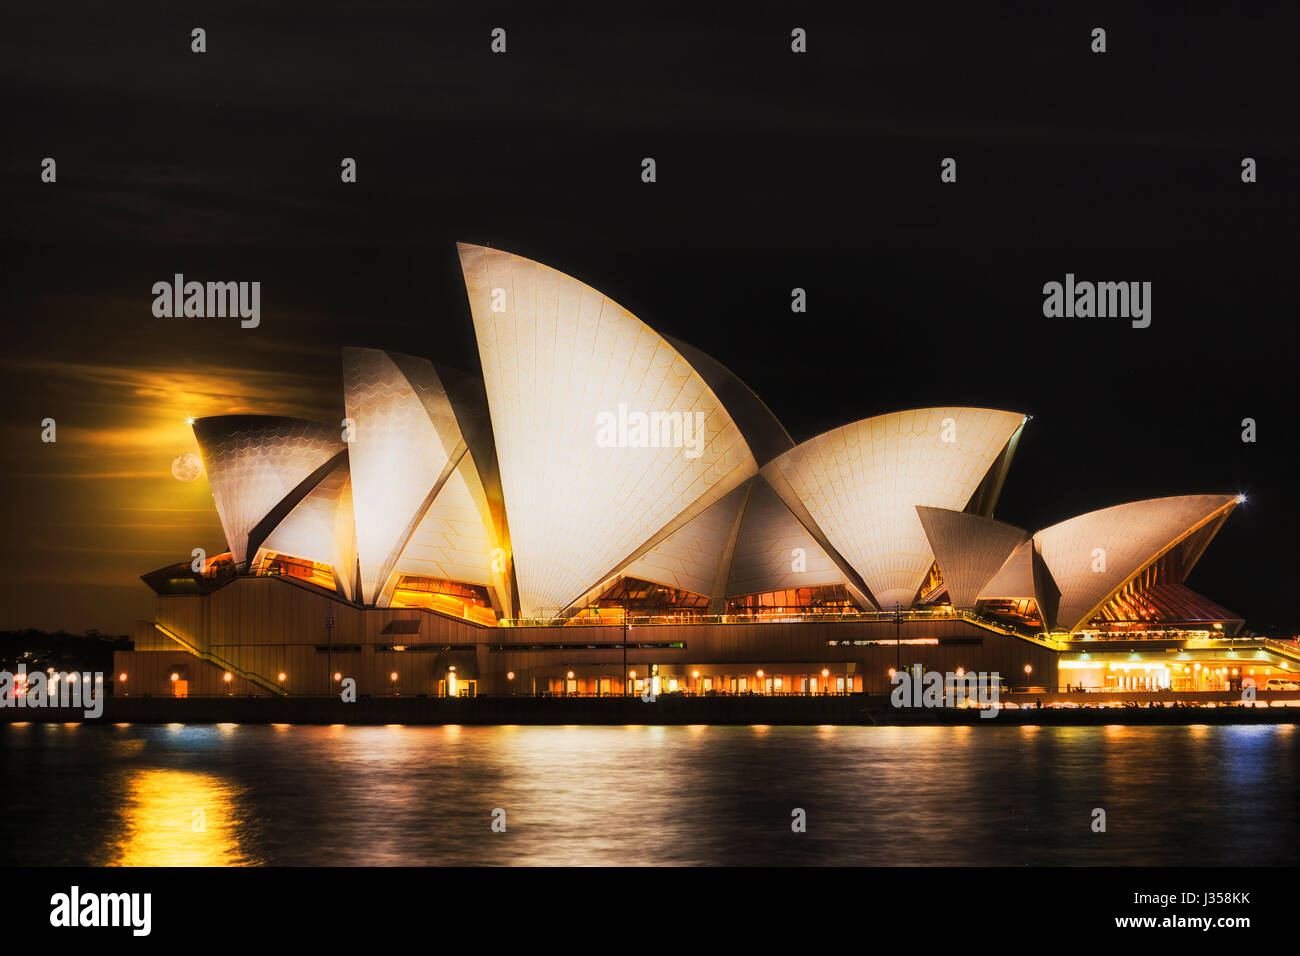 Sydney, Australia - 15 November 2016: Super moon unique astronomical evant of rising moon over world famous Sydney - Stock Image